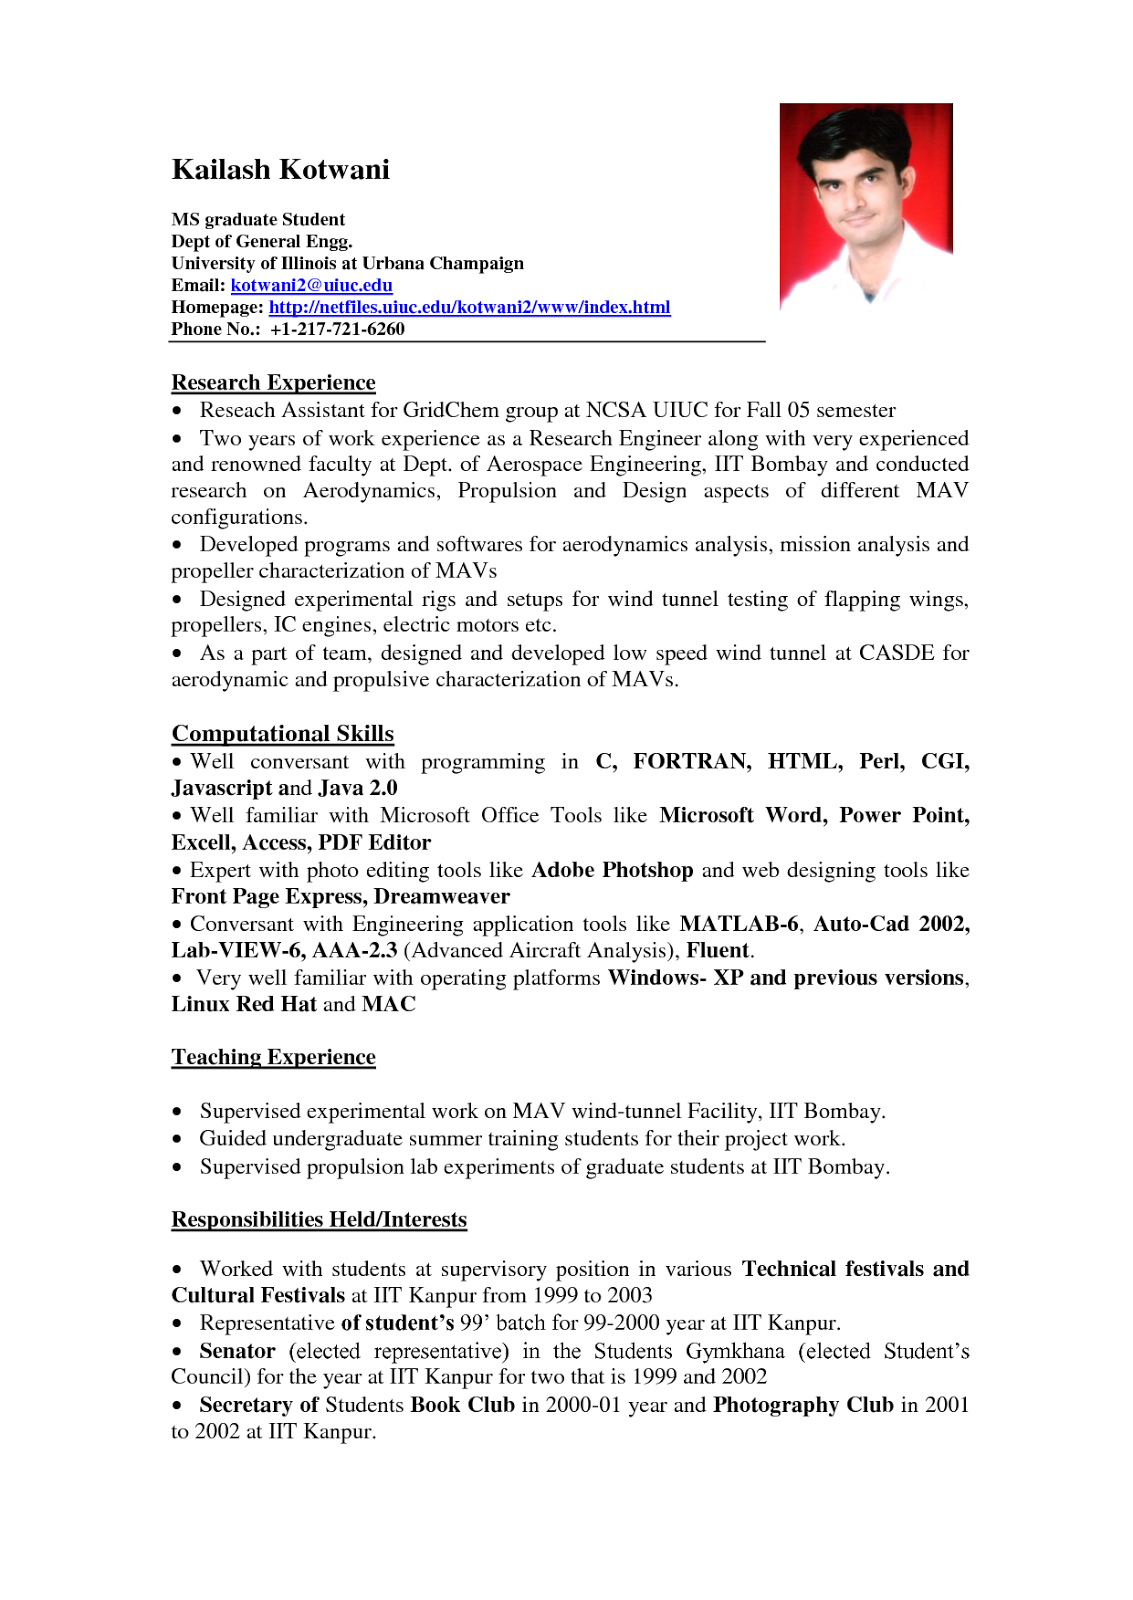 How To Write Resume With No Job Experience Sample Resume Format For Students Sample Resumes